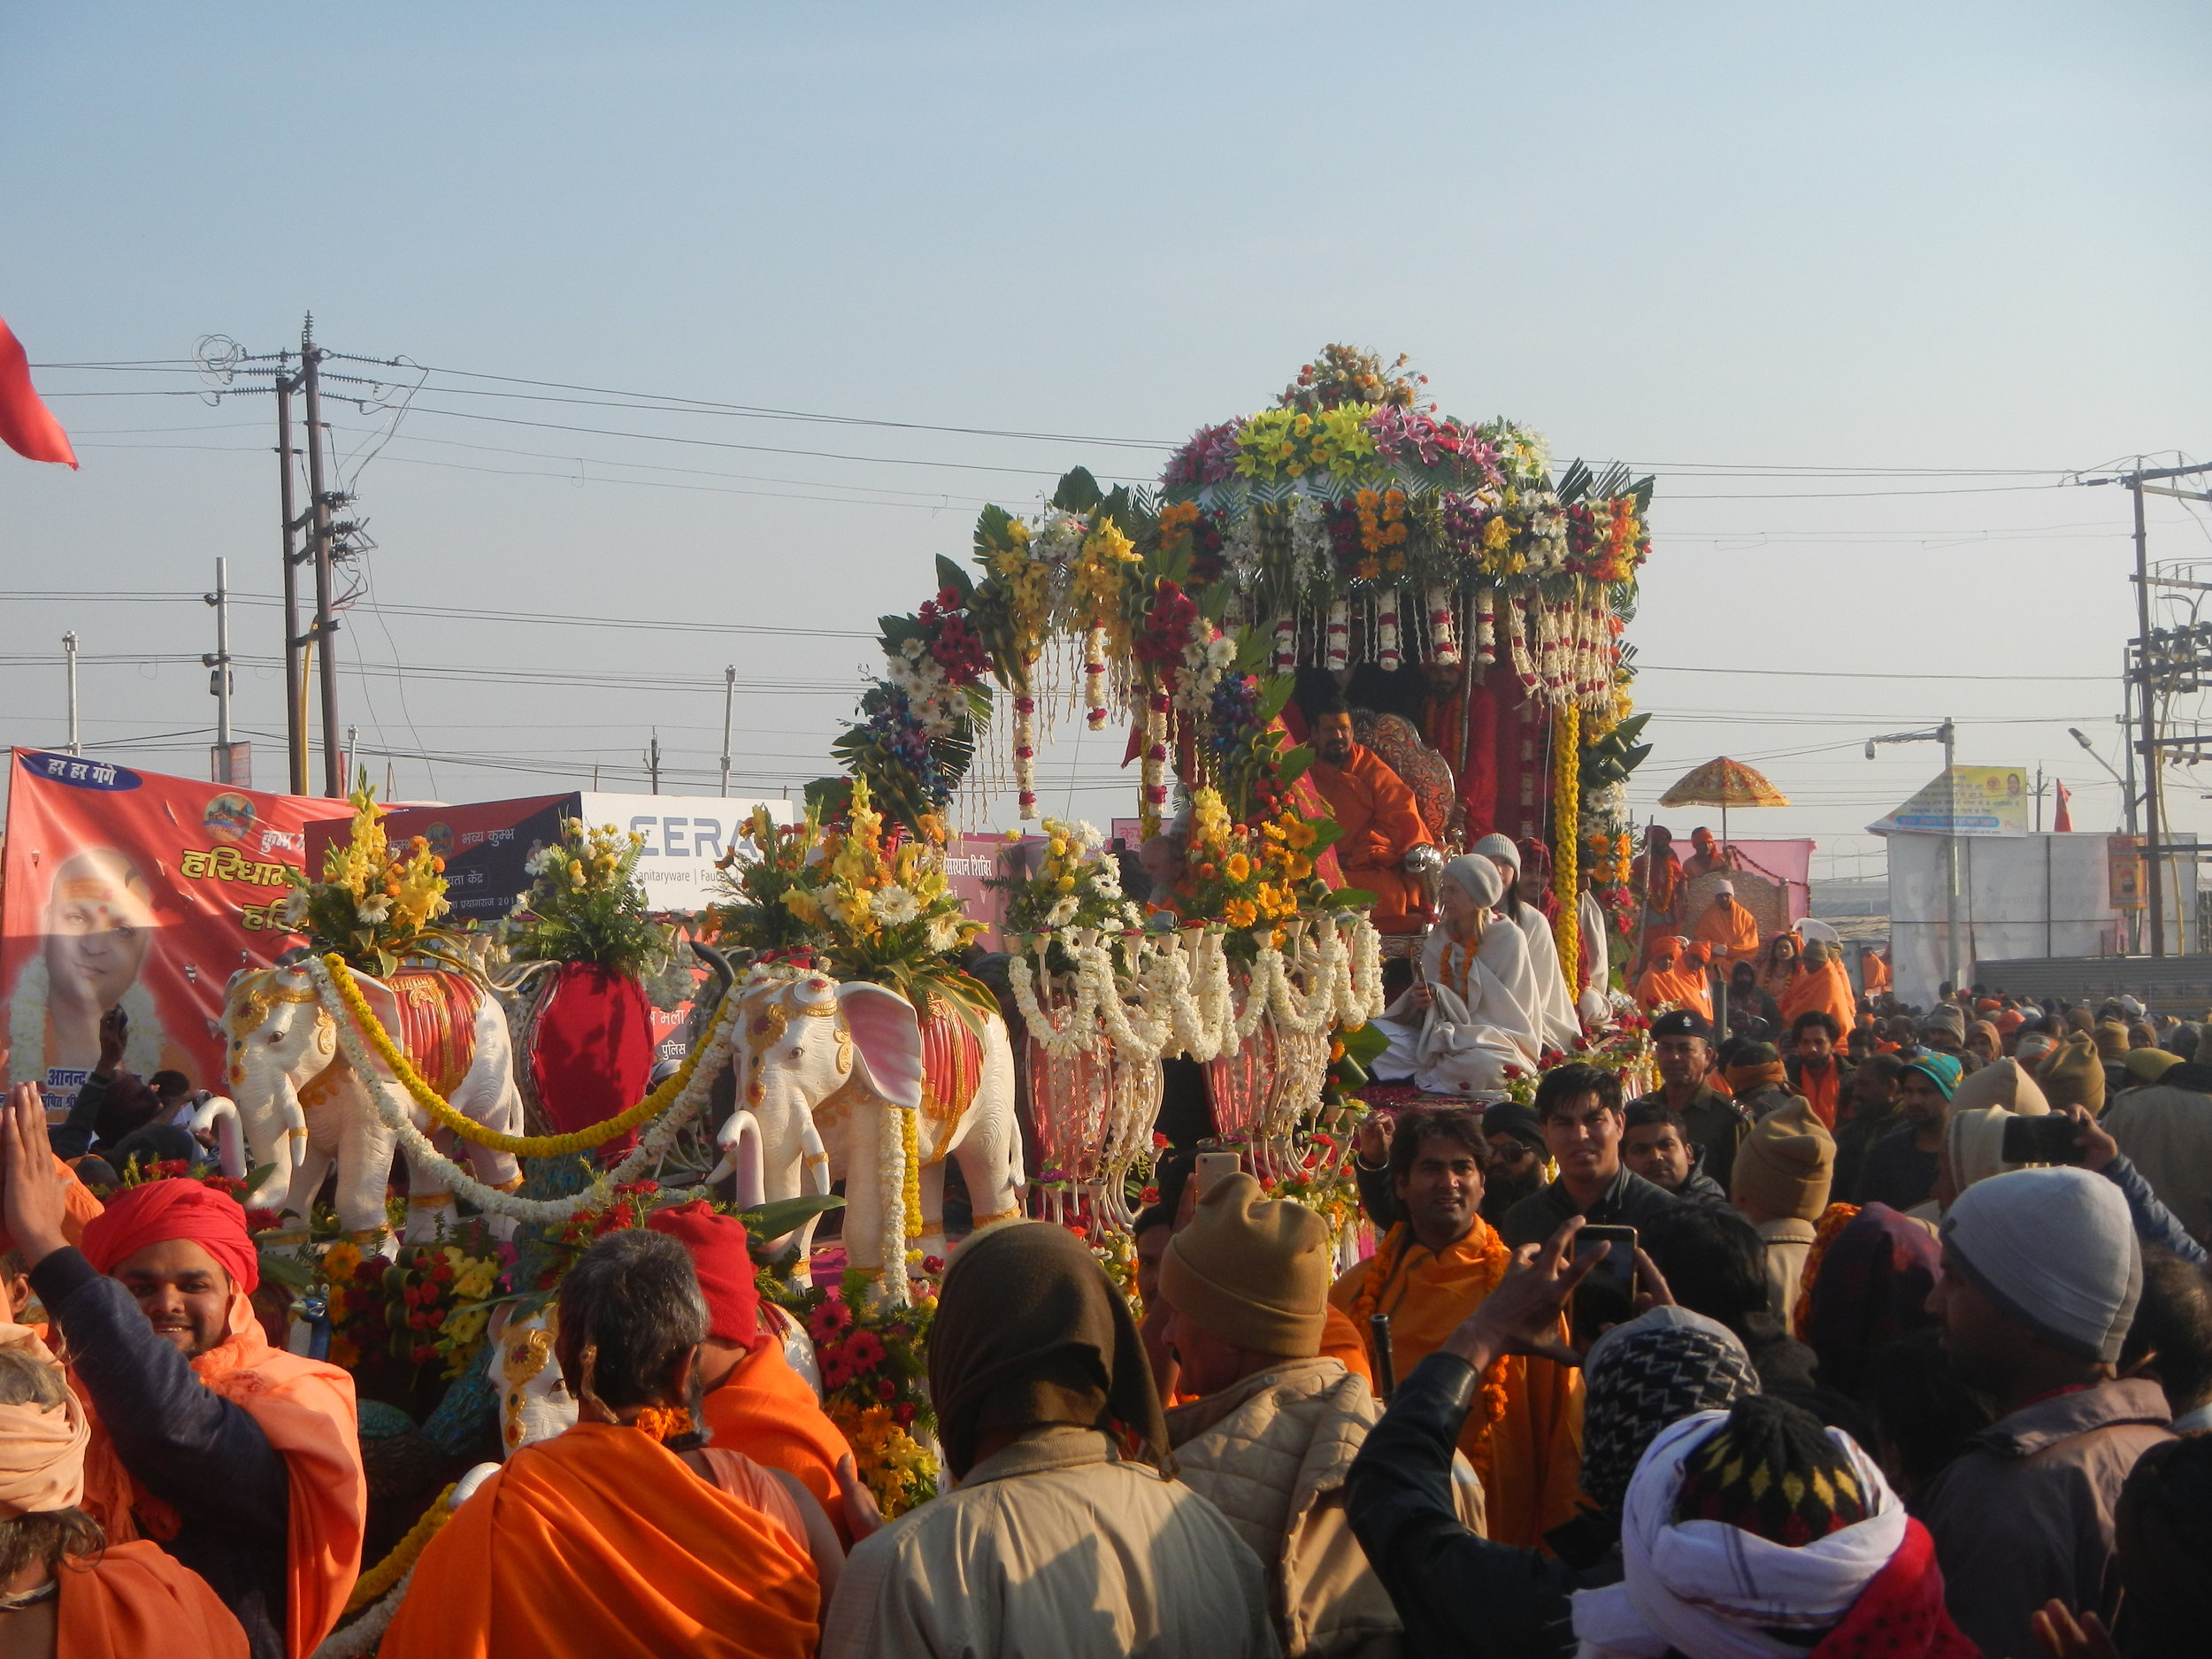 Traditional seers participate in a religious procession ahead of ceremonial bathing in Prayagraj, India. Photo by Priyadarshini Sen.